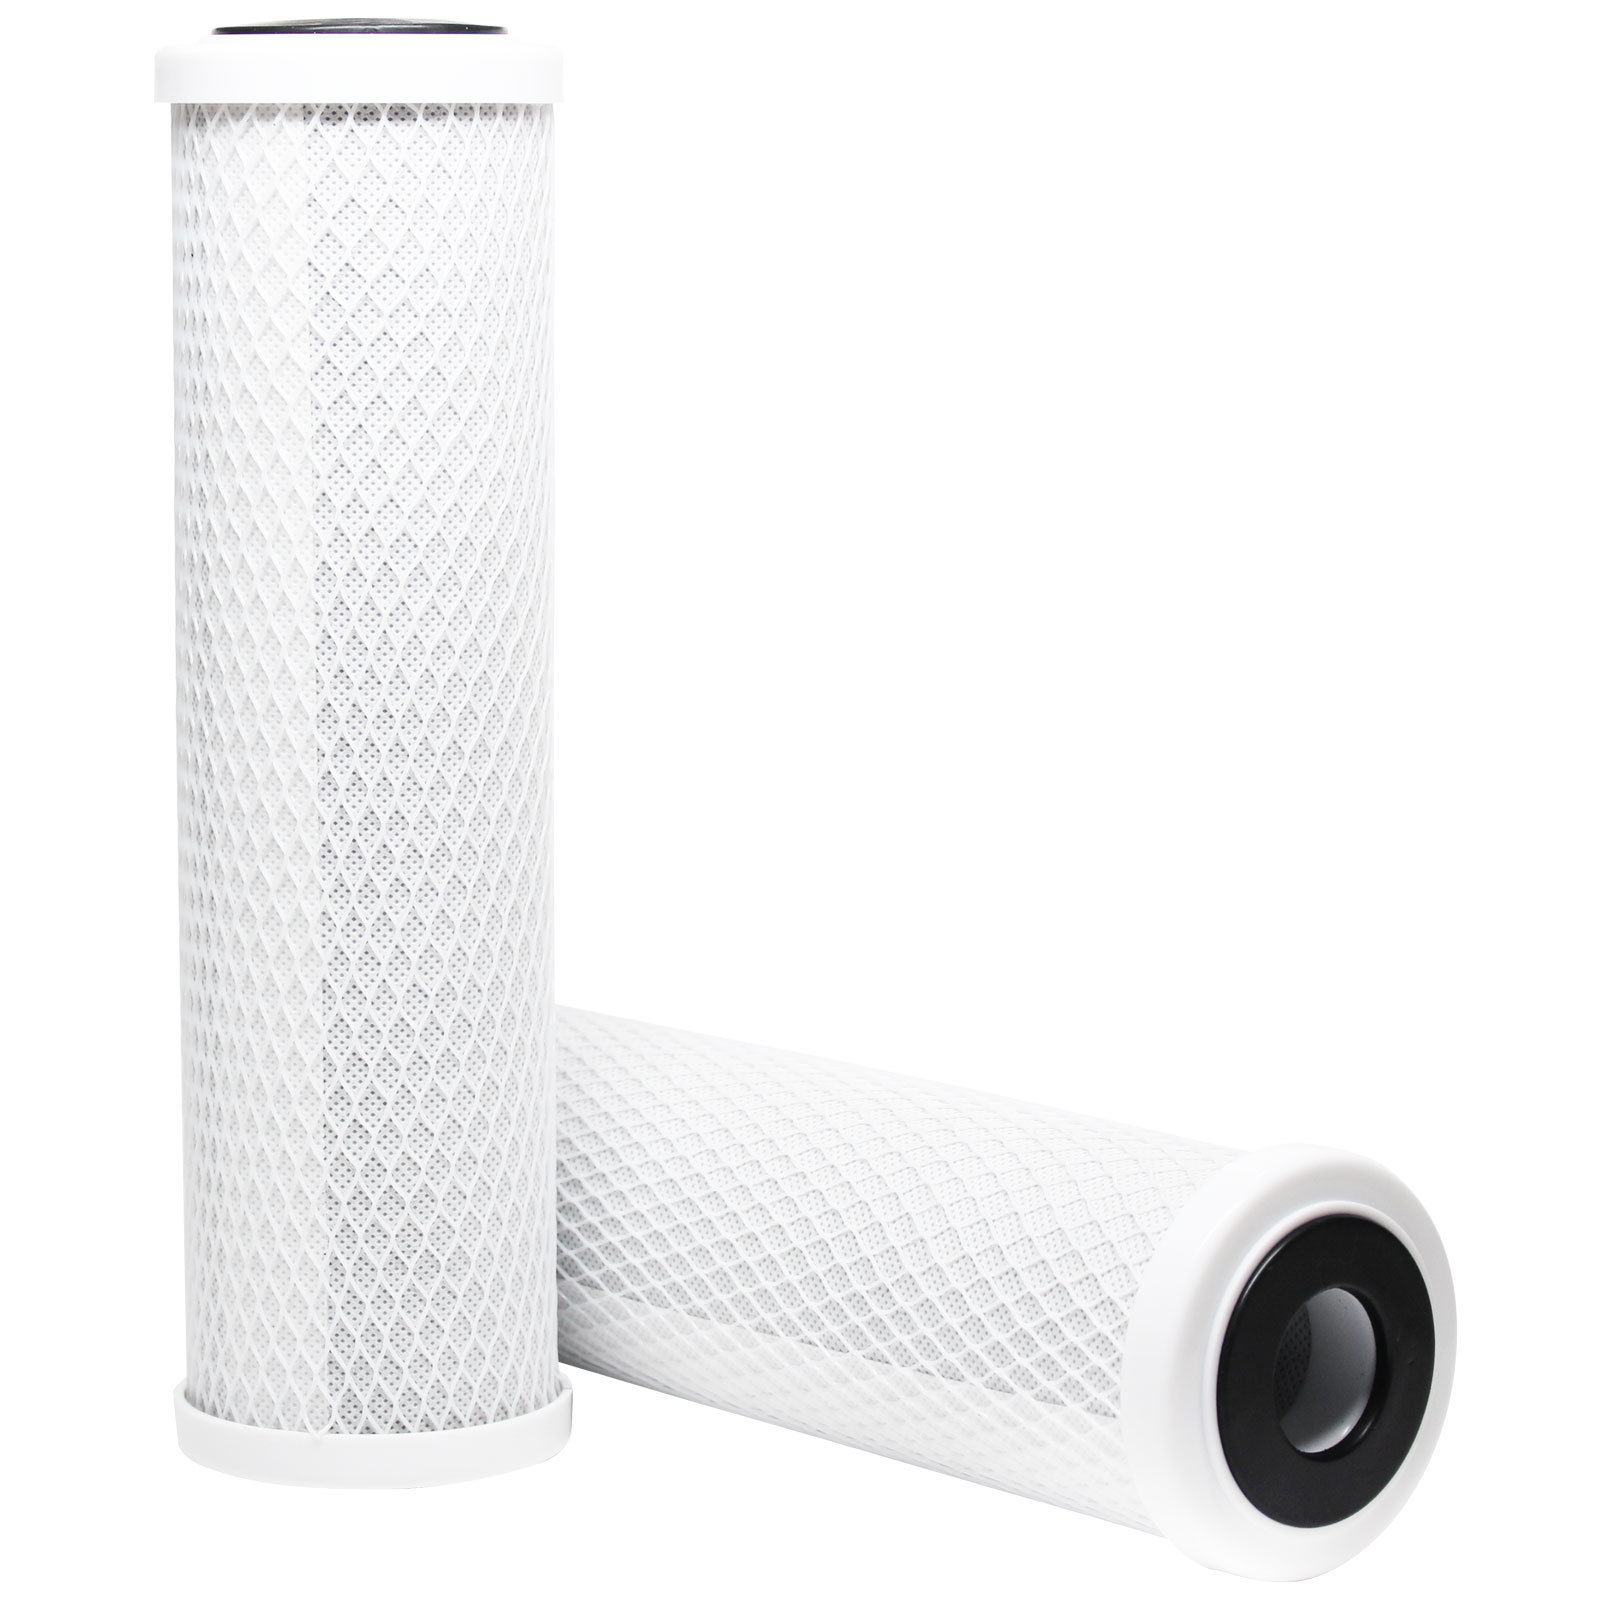 12 99 2 Pack Carbon Block Water Filter For Culligan Hf 360 Rvf